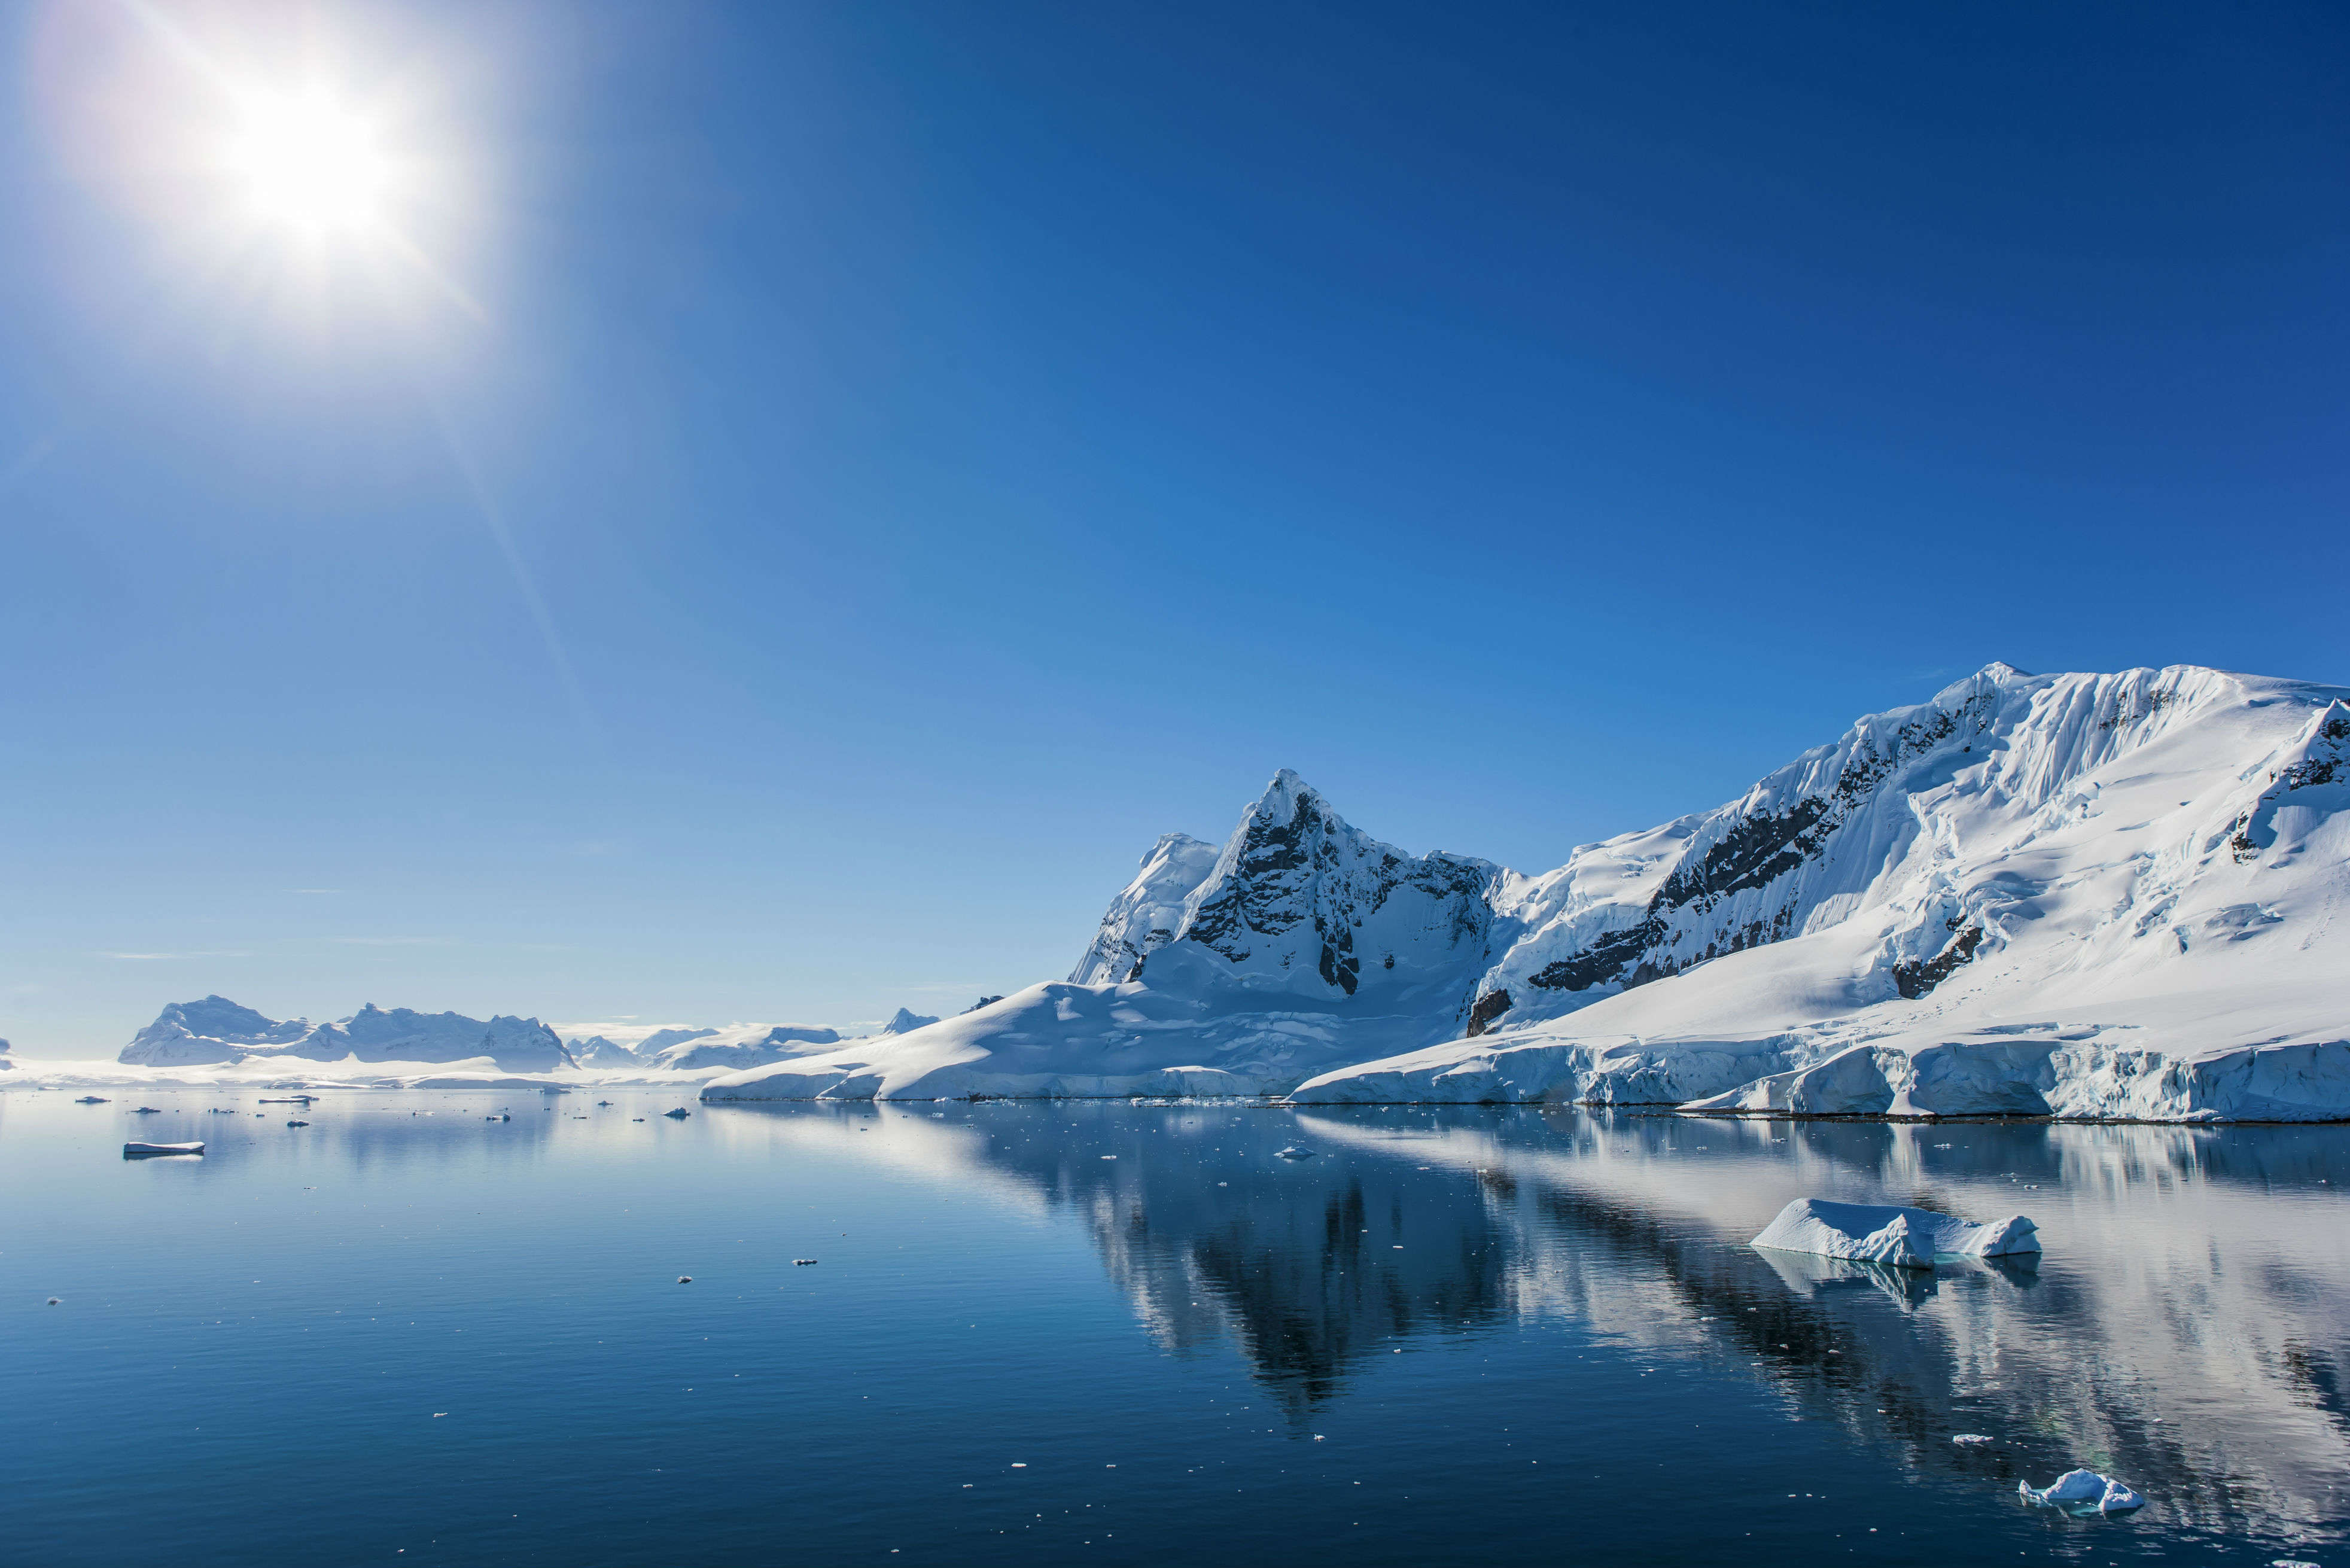 Australia brings hope for a new marine sanctuary in the Antarctic